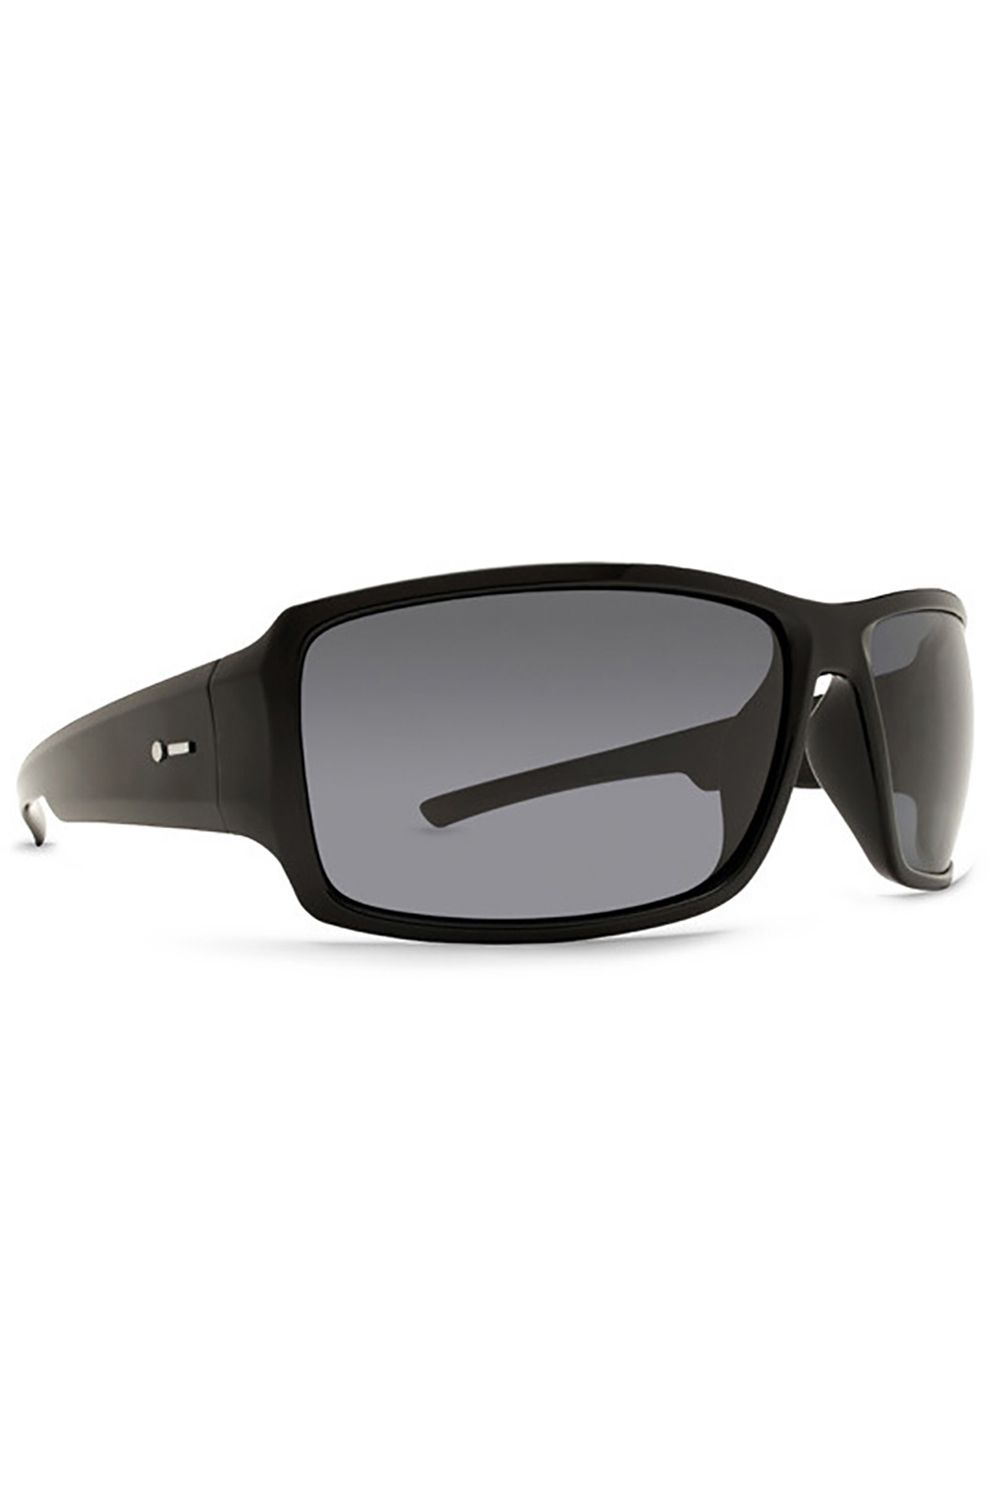 Oculos Dot Dash EXXELLERATOR Black Gloss / Grey